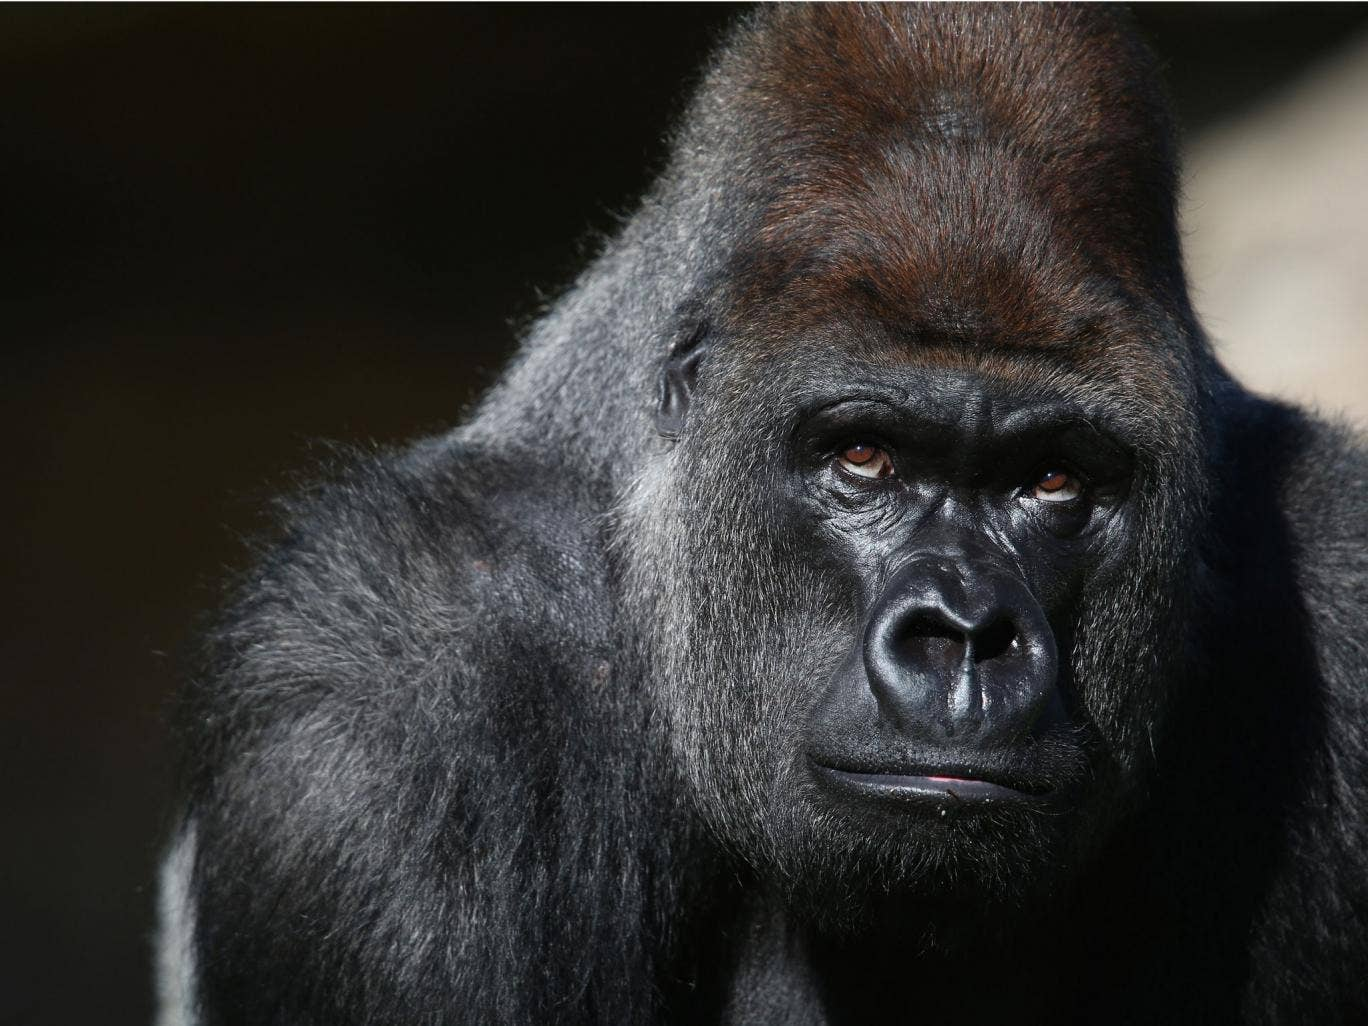 A world-renowned gorilla expert was killed after a chef she sacked bore a grudge